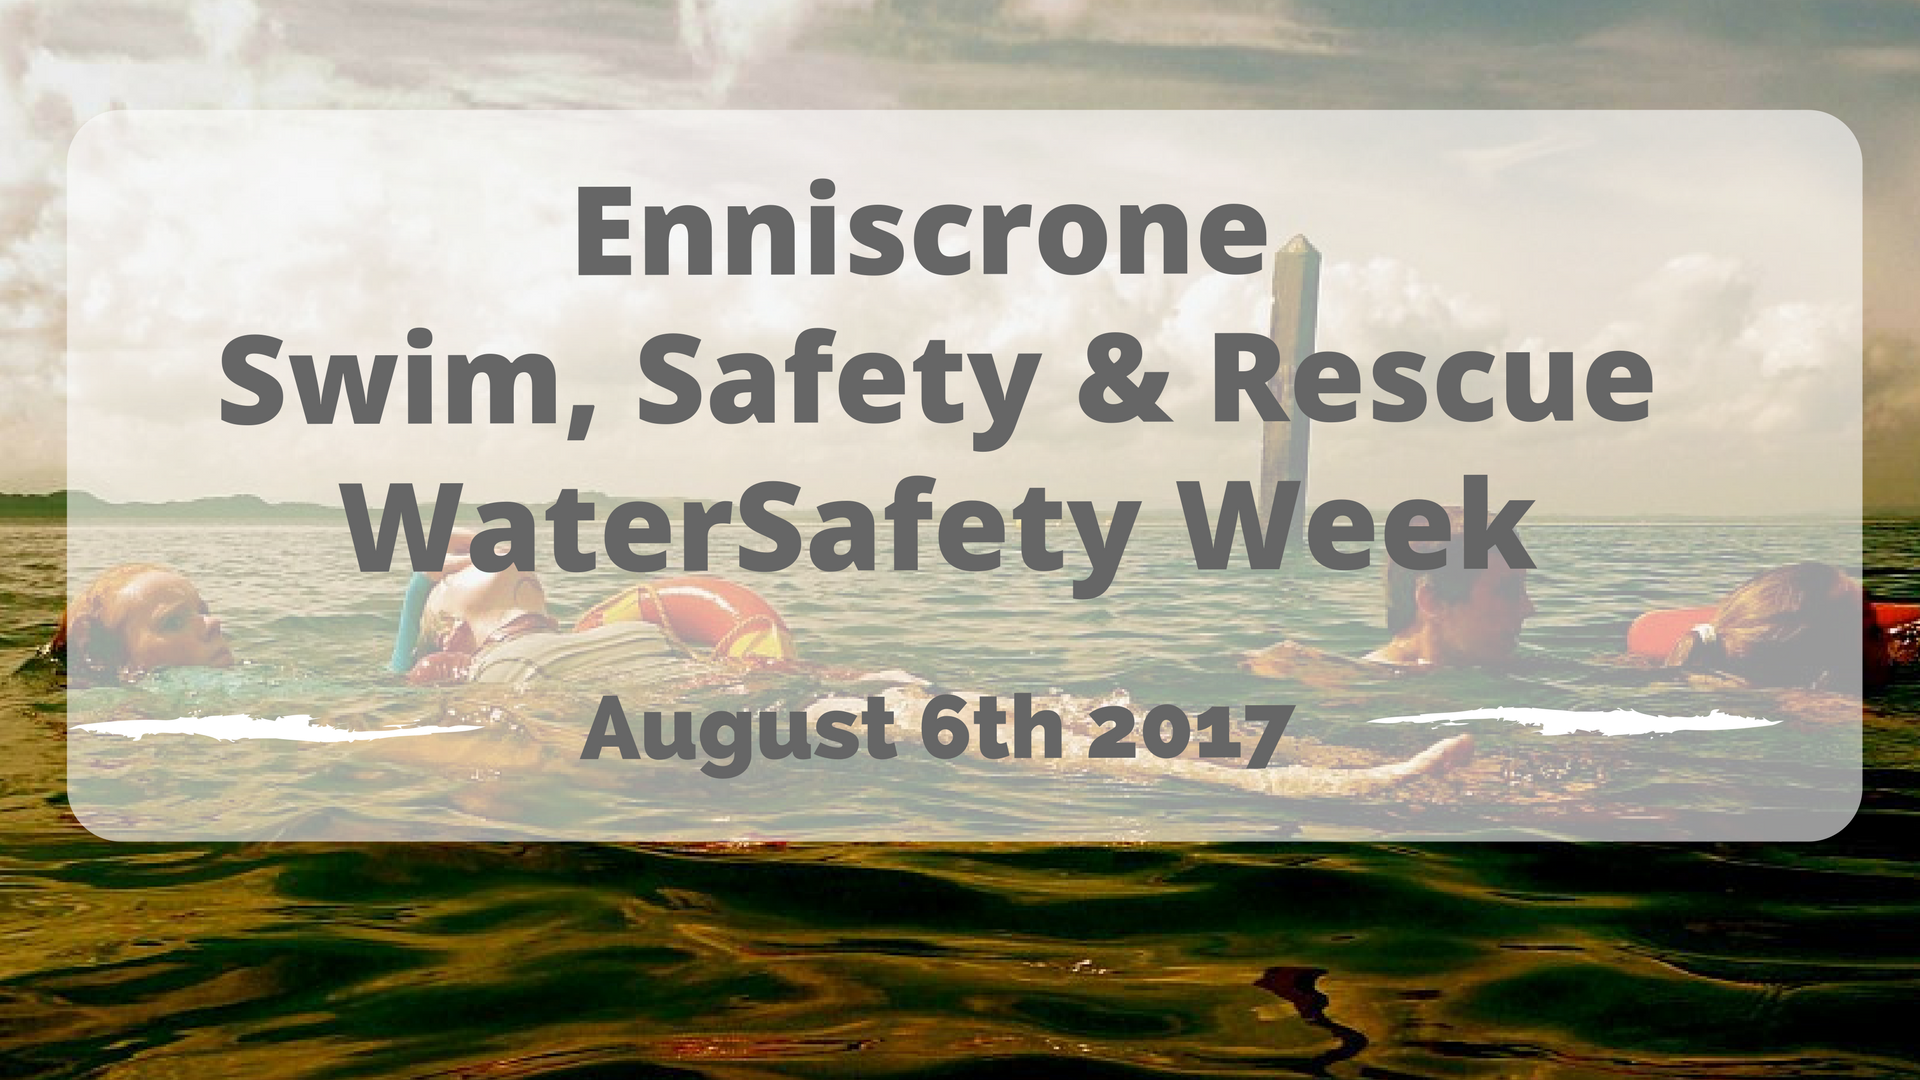 Enniscrone Water Safety Week 2017